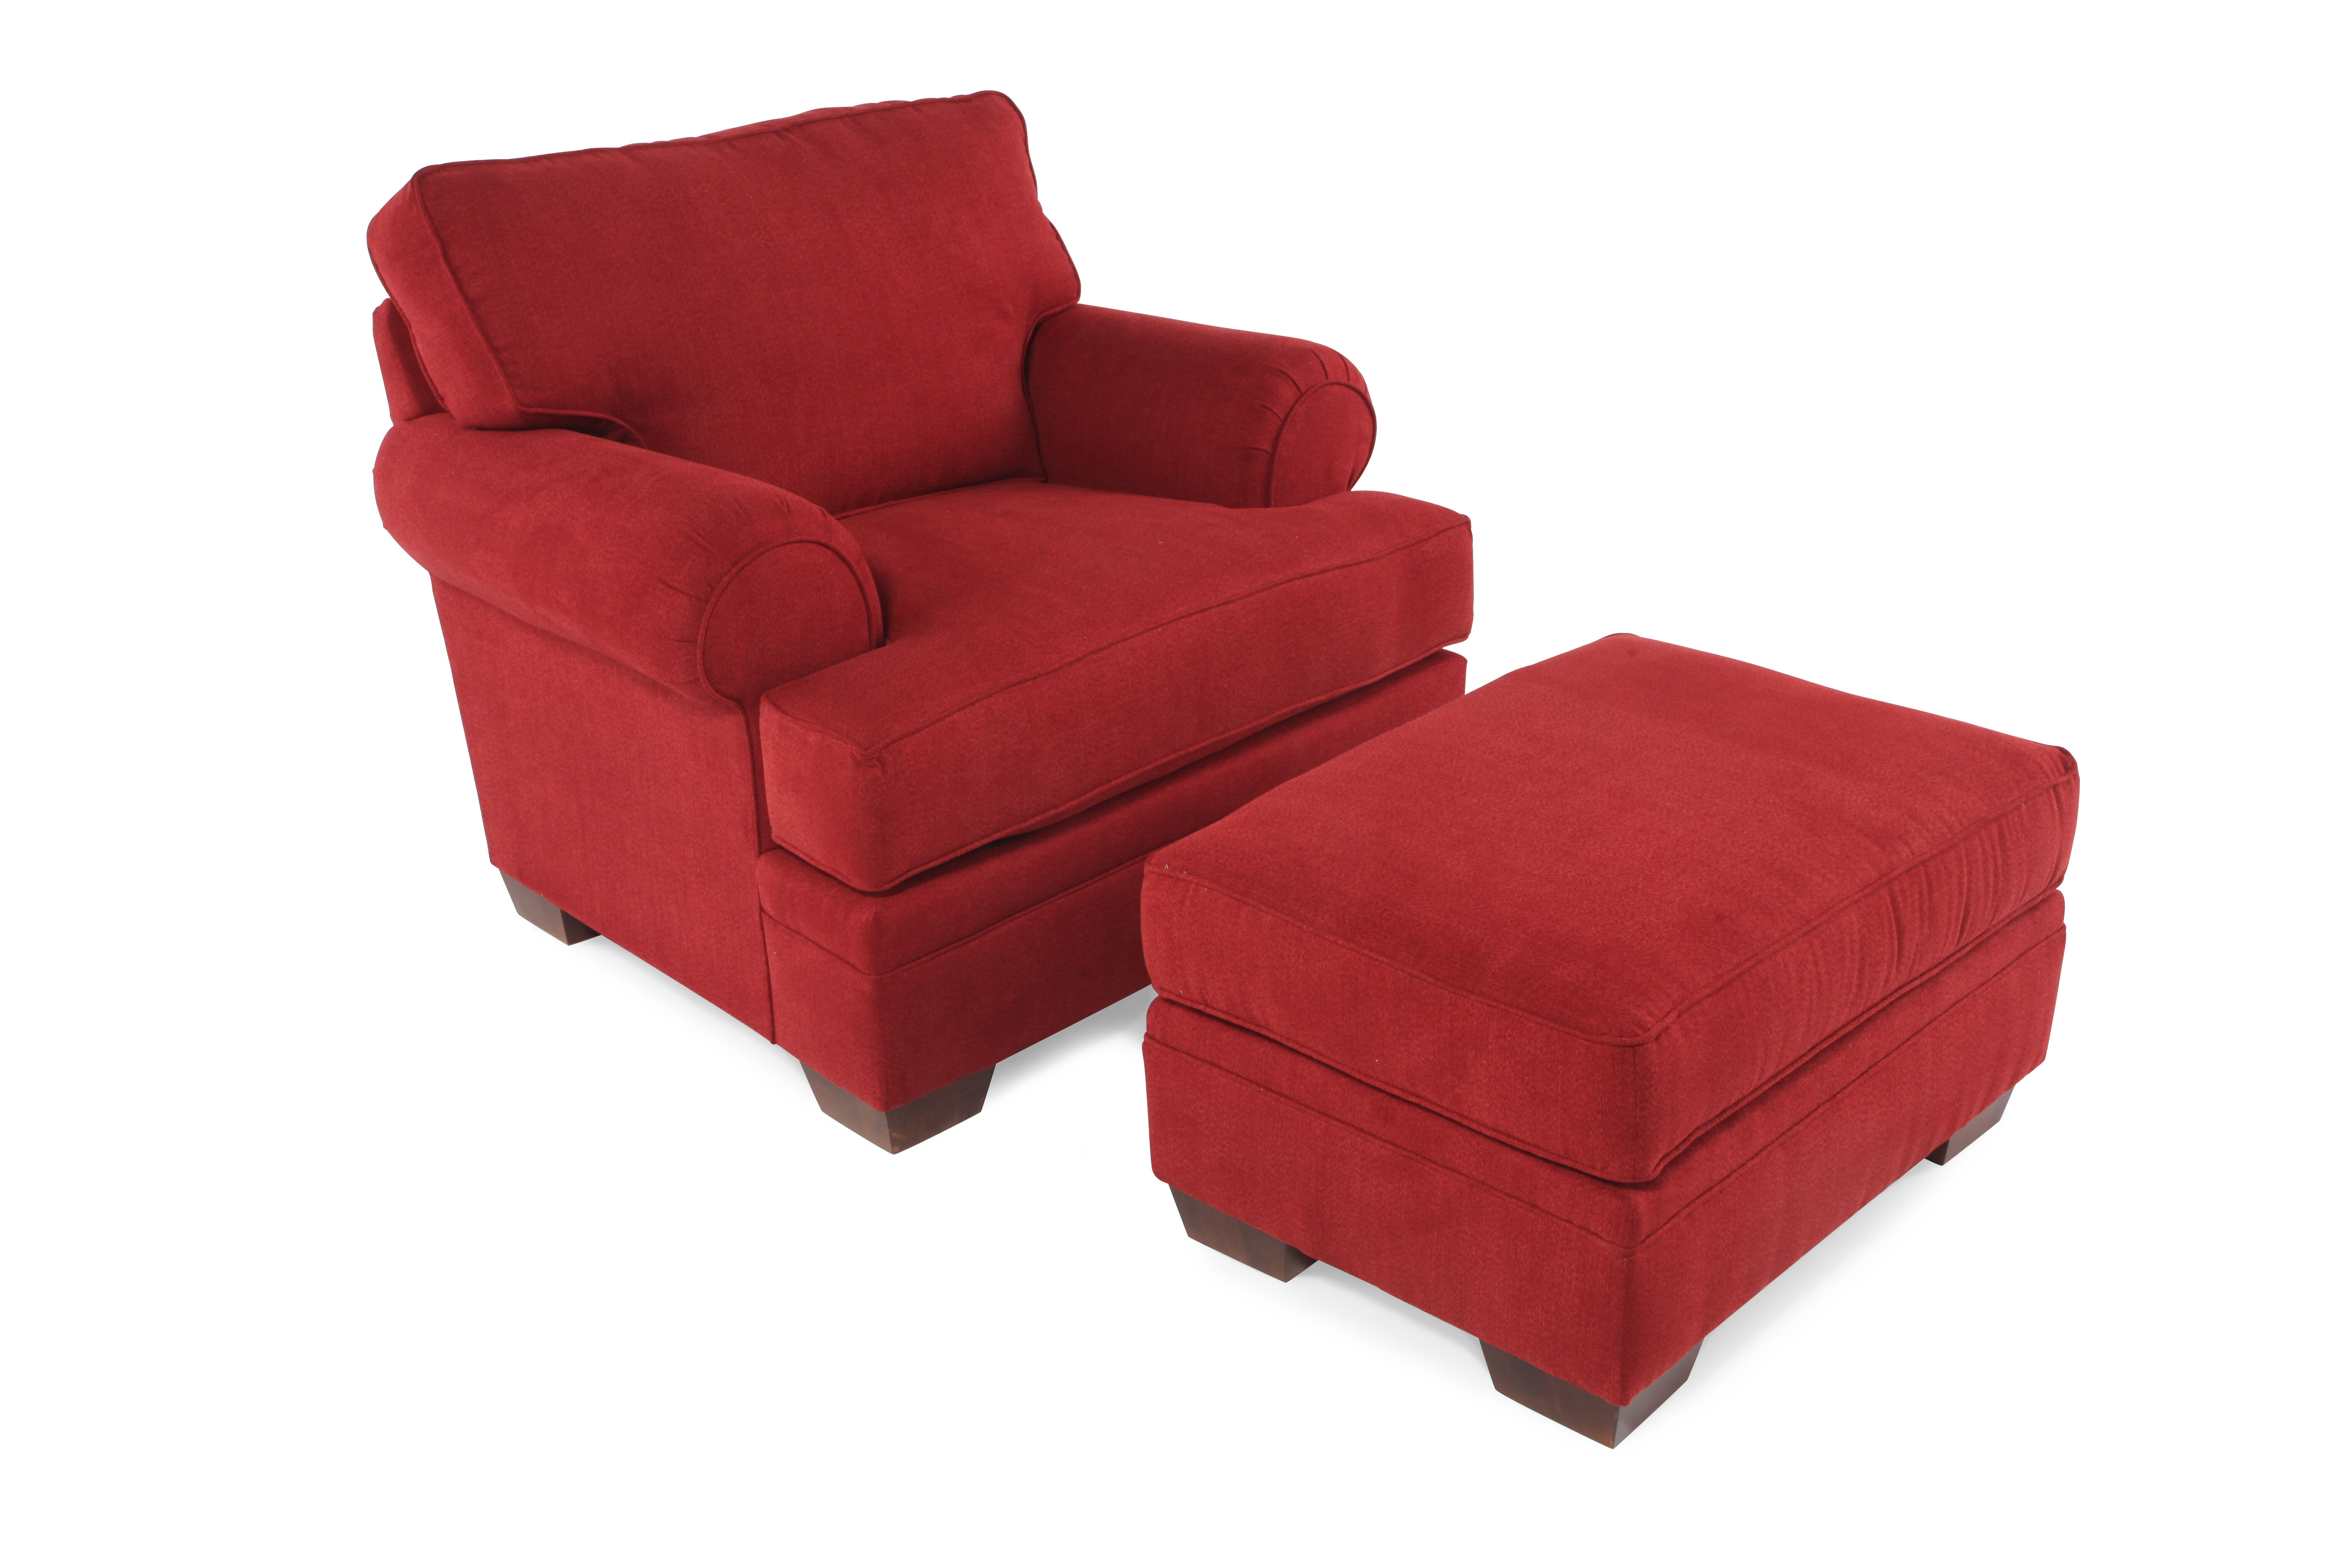 red chair and ottoman kitchen chairs canada traditional in mathis brothers